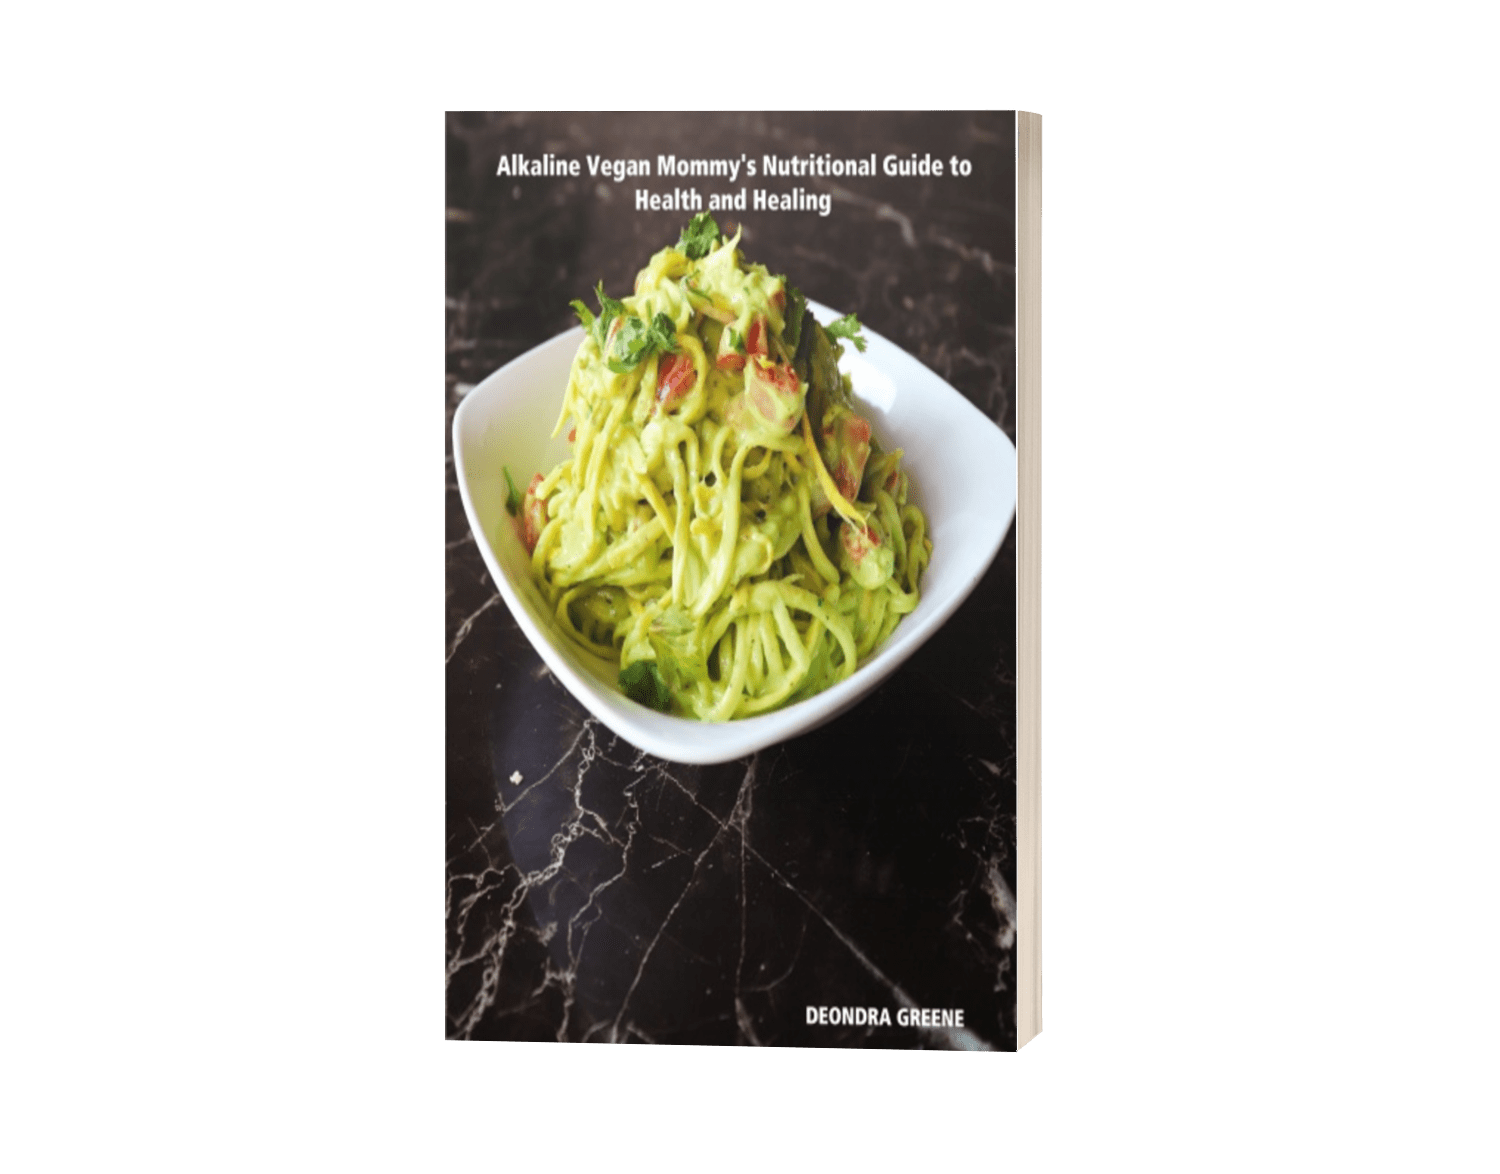 Alkaline Vegan Mommy's Nutritional Guide to Health and Healing